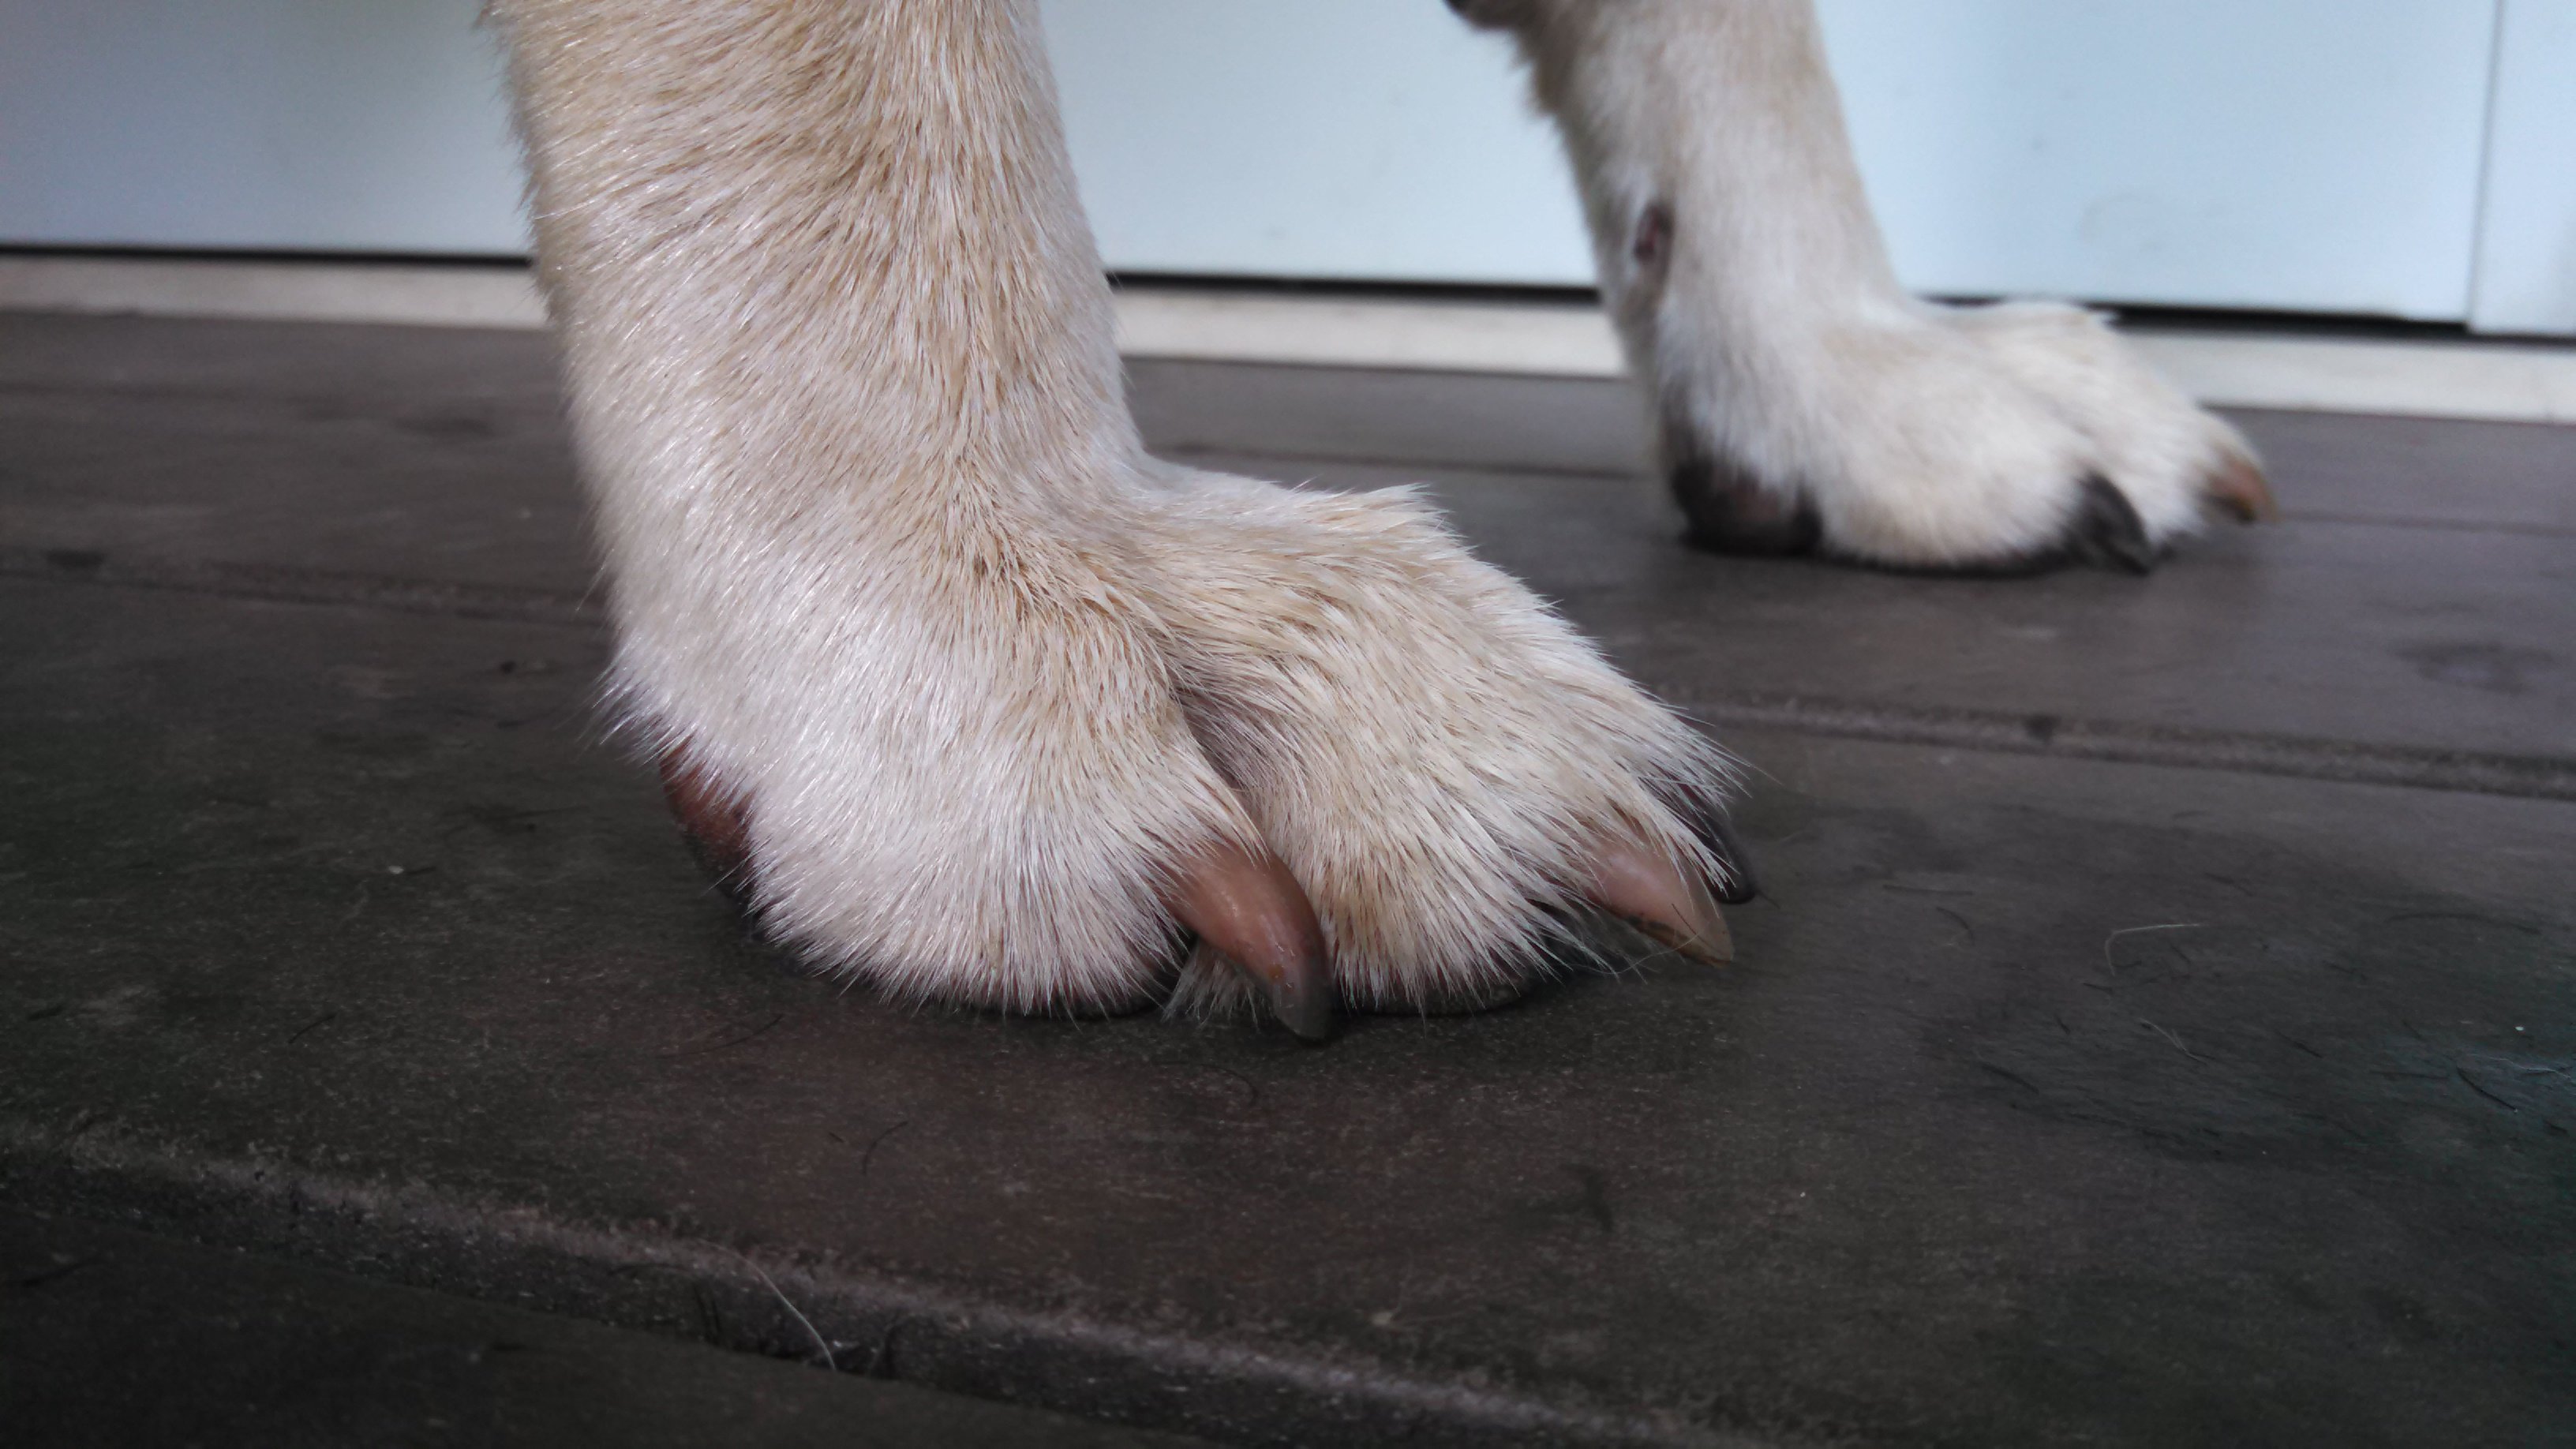 German Shepherd Watch Dogs Nails: How Long is Too Long for Your ...